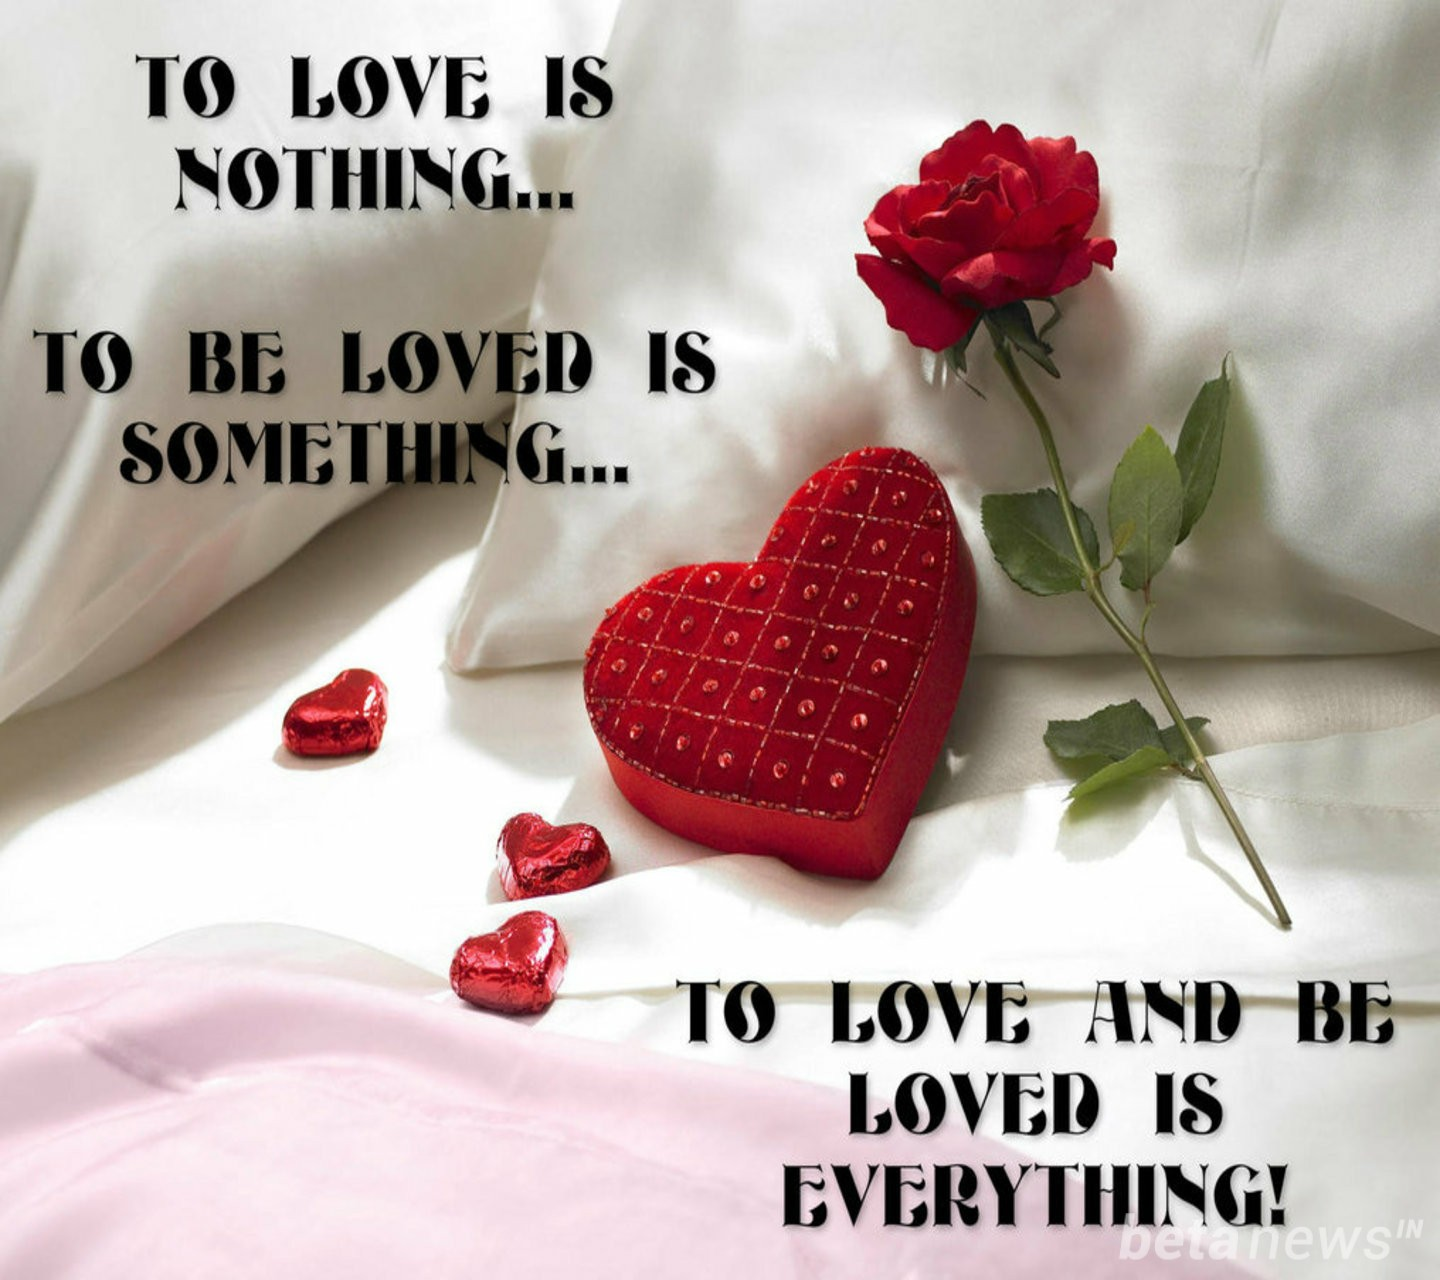 Love Quotes Dp Wallpaper : Best Love Pictures For Whatsapp Dp Wallpaper sportstle